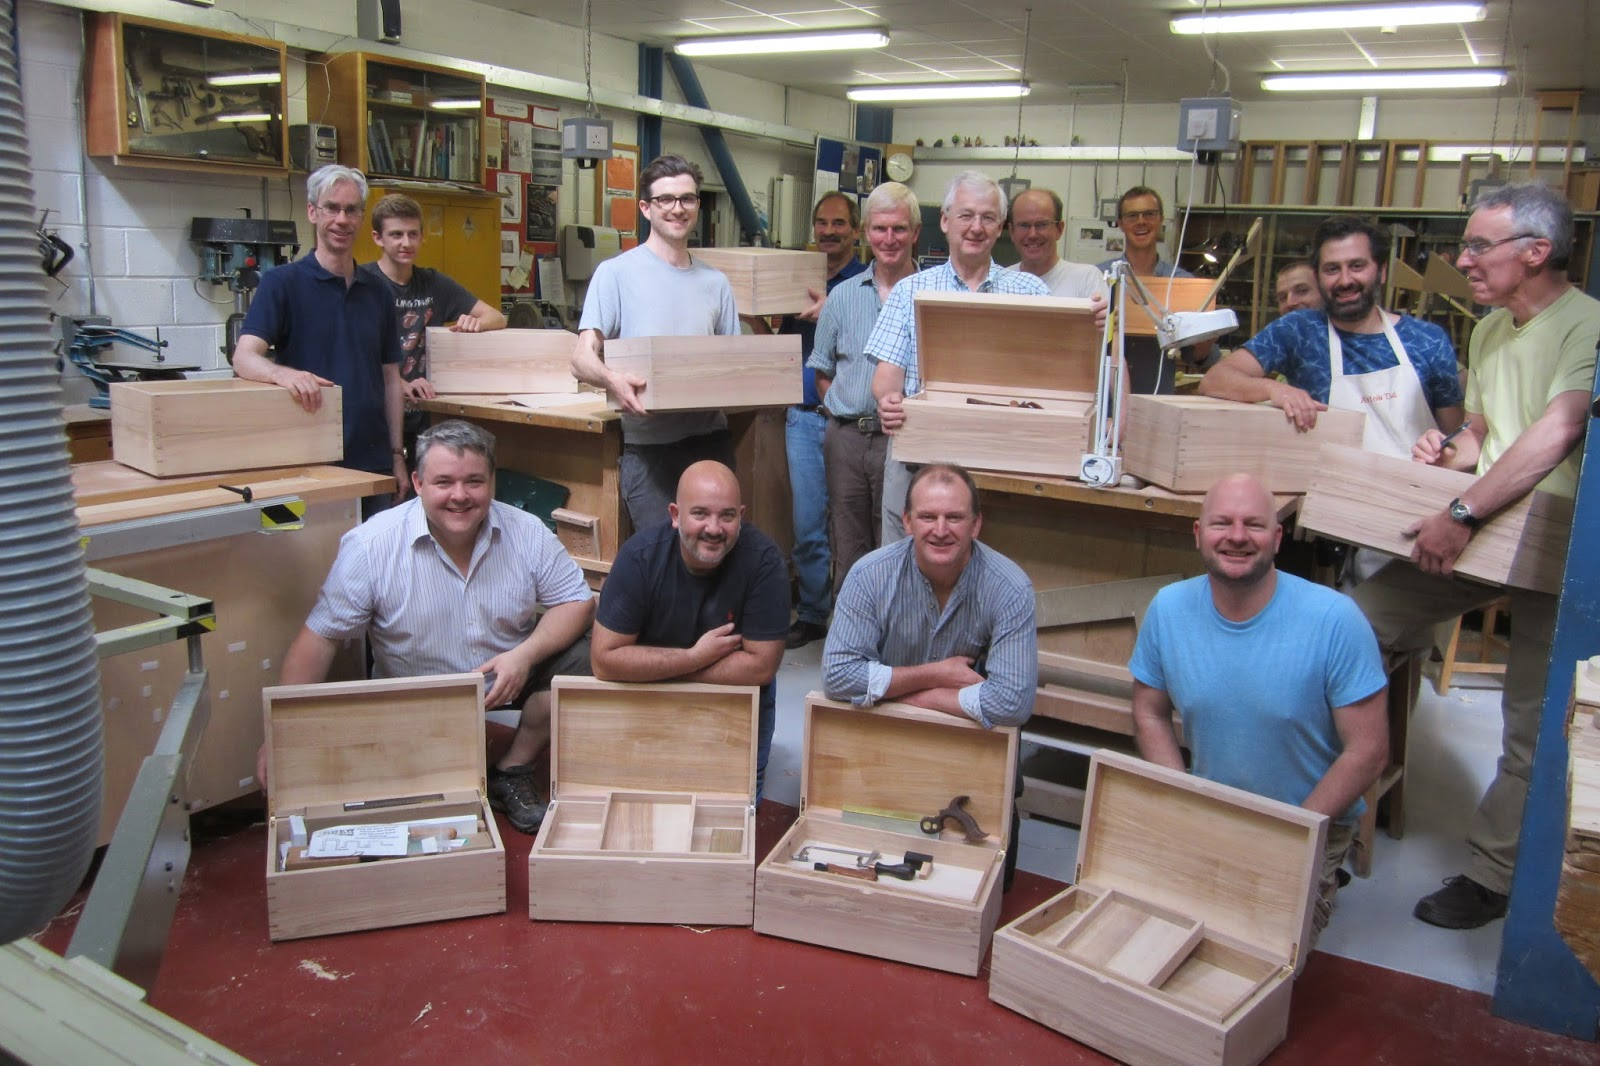 After Five Full On Days Here Is Everyone Proudly Showing Their Results, All  17 Of Them. Some Finished The Chest As Well As Both The Piston Fit Trays  And The ...